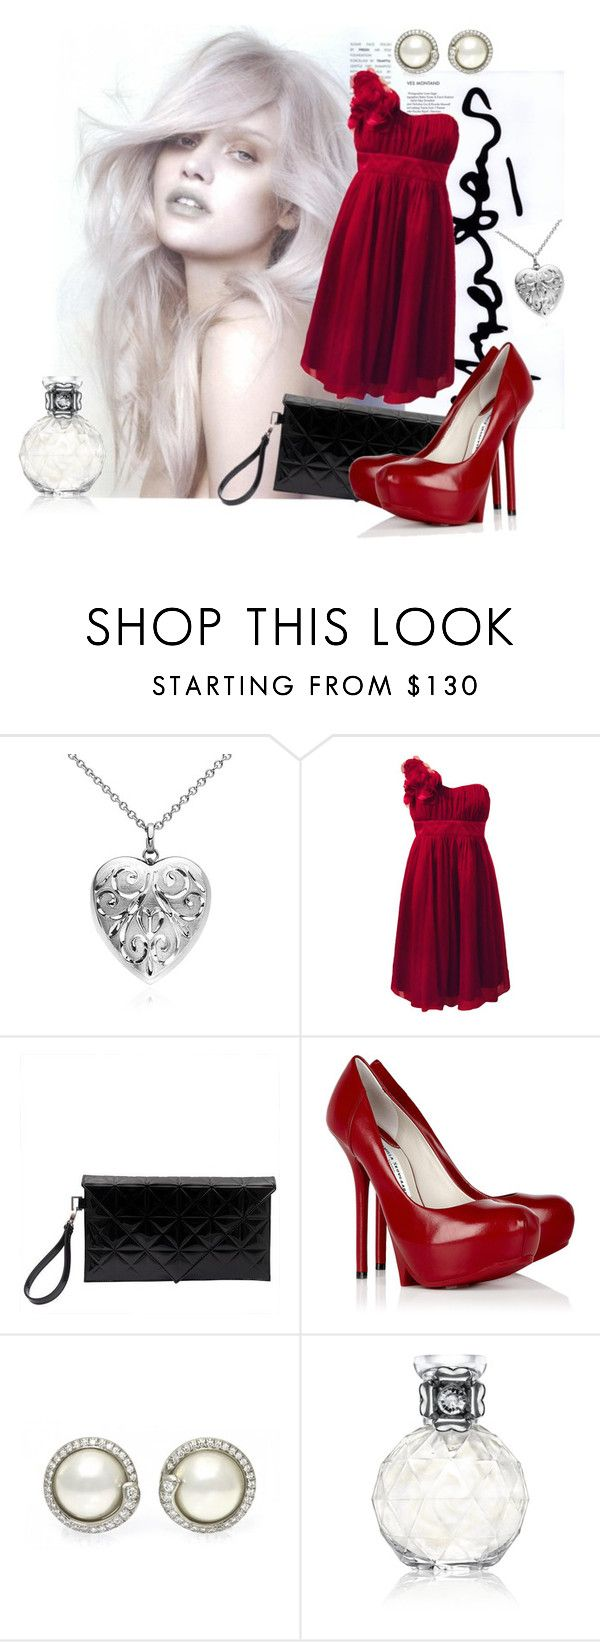 """Sem título #227"" by suellenspinola ❤ liked on Polyvore featuring Dansk, Fever, Gareth Pugh, Camilla Skovgaard and Precious Moments"